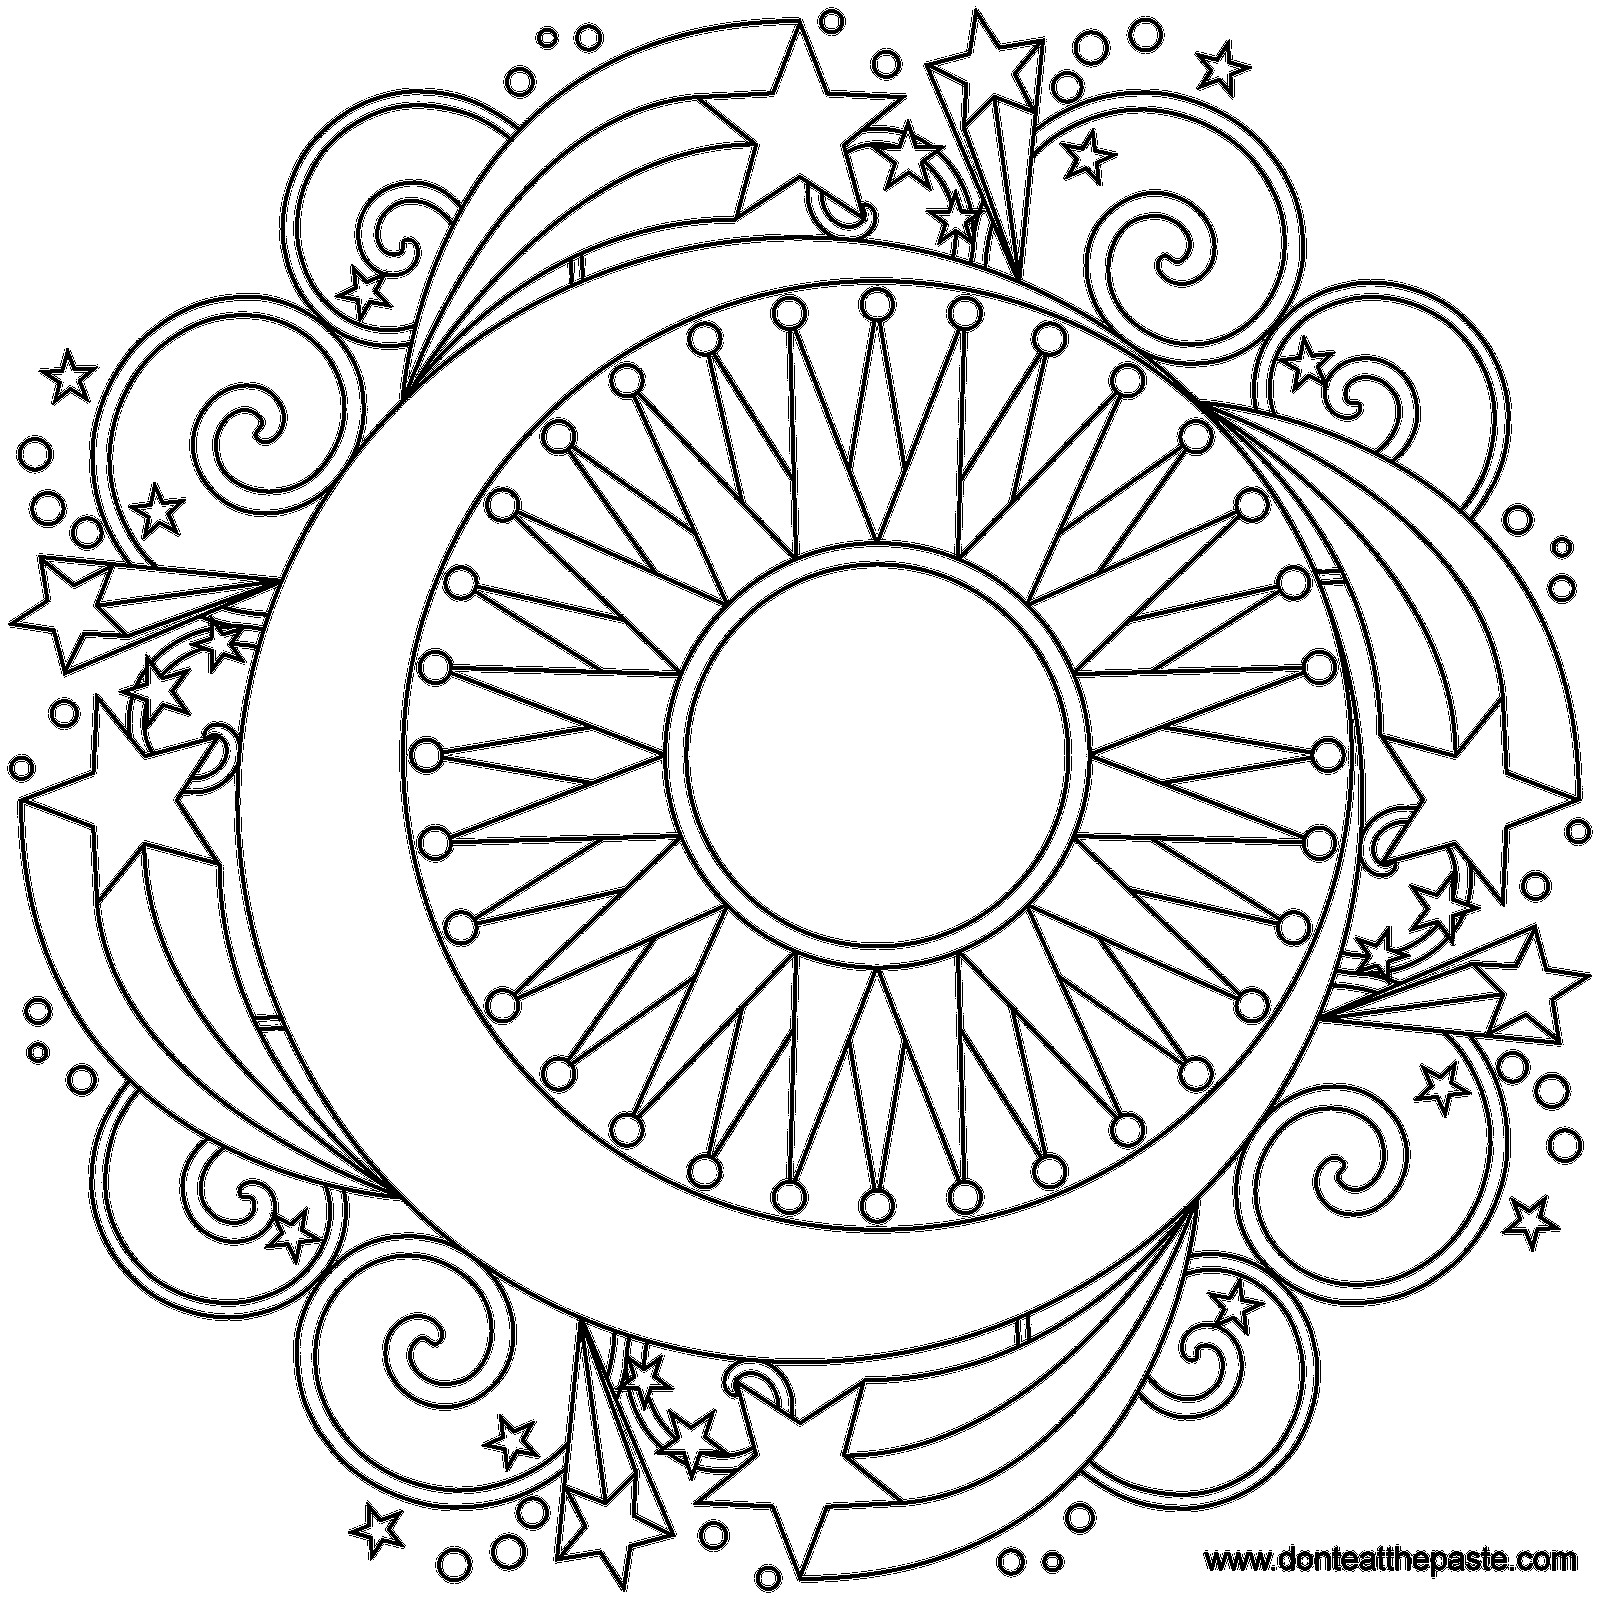 Coloring Book Sun Andn Coloring Pages Celestial Page Star Tremendous Book Free 83 Tremendous Sun